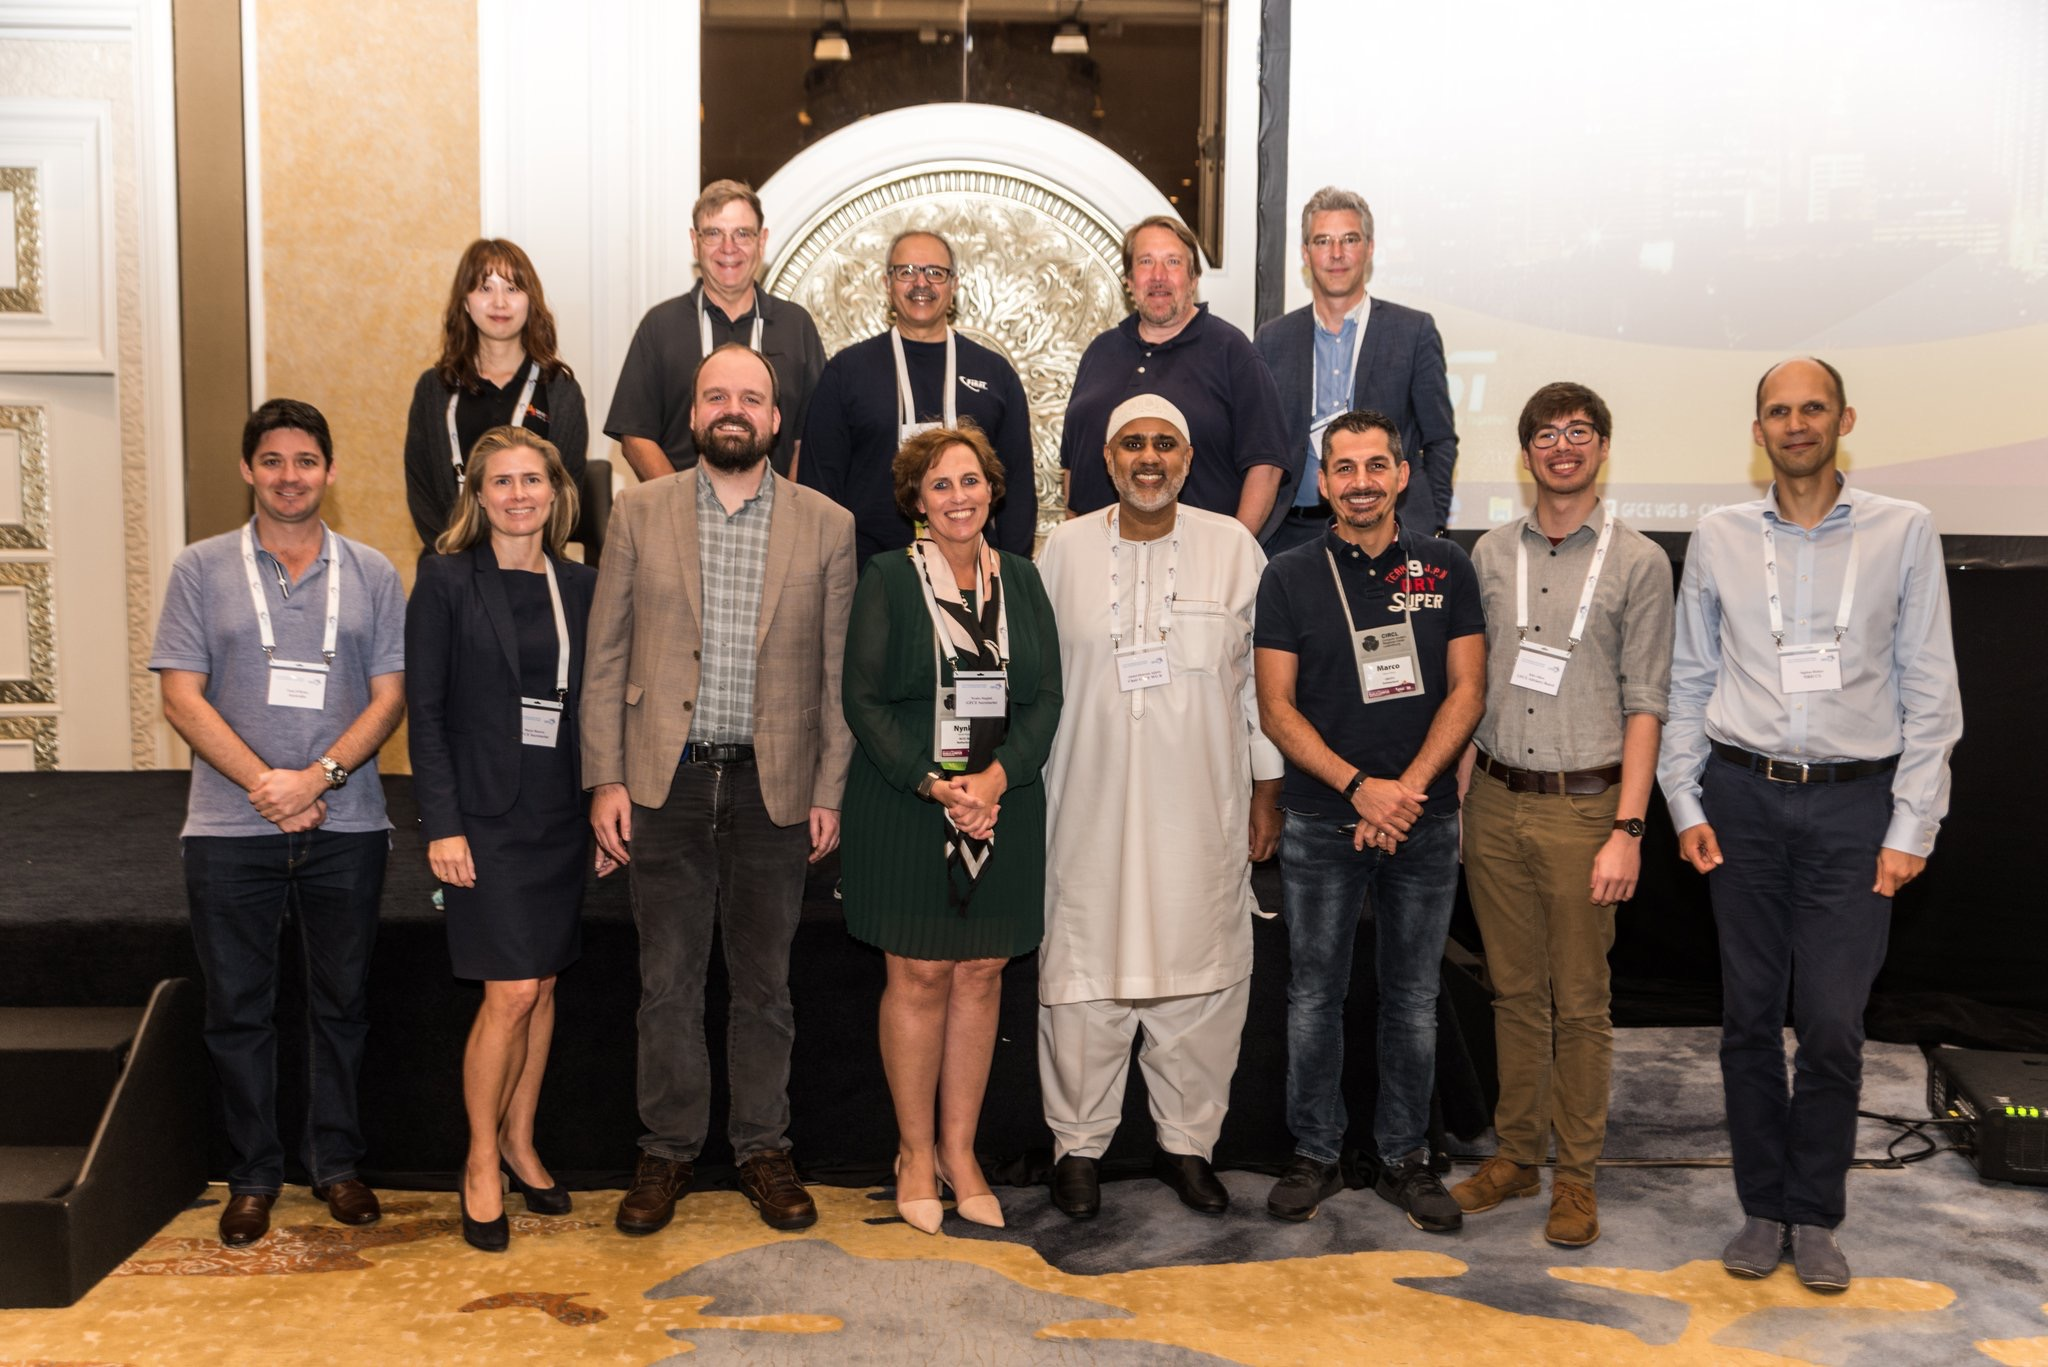 GFCE Working Group meeting at FIRST Annual Conference - Kuala Lumpur, MY (2018)